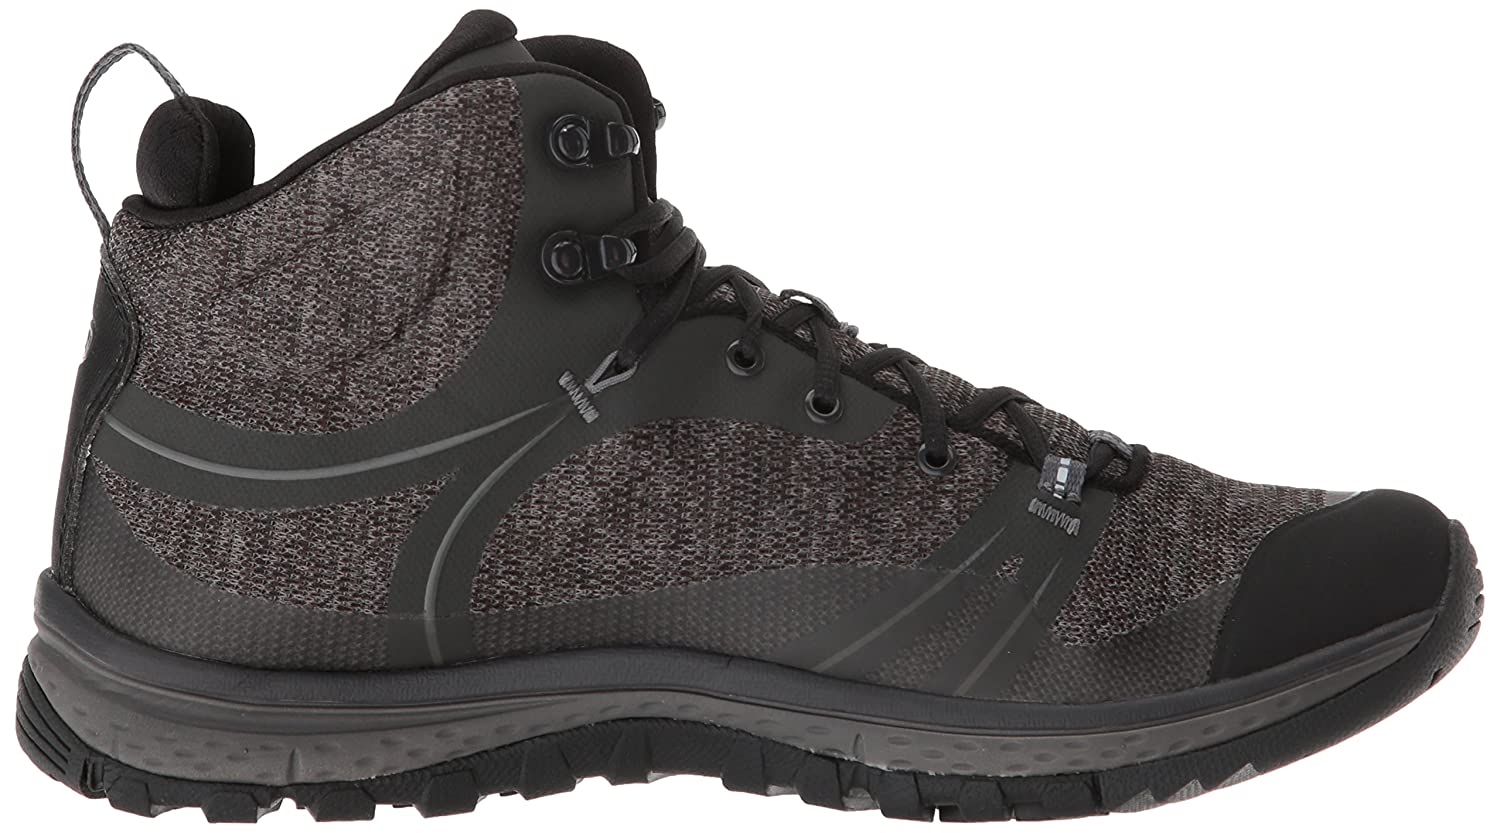 KEEN Women's Terradora Mid Waterproof Hiking Shoe B077K8C189 9.5 M US|Raven/Gargoyle